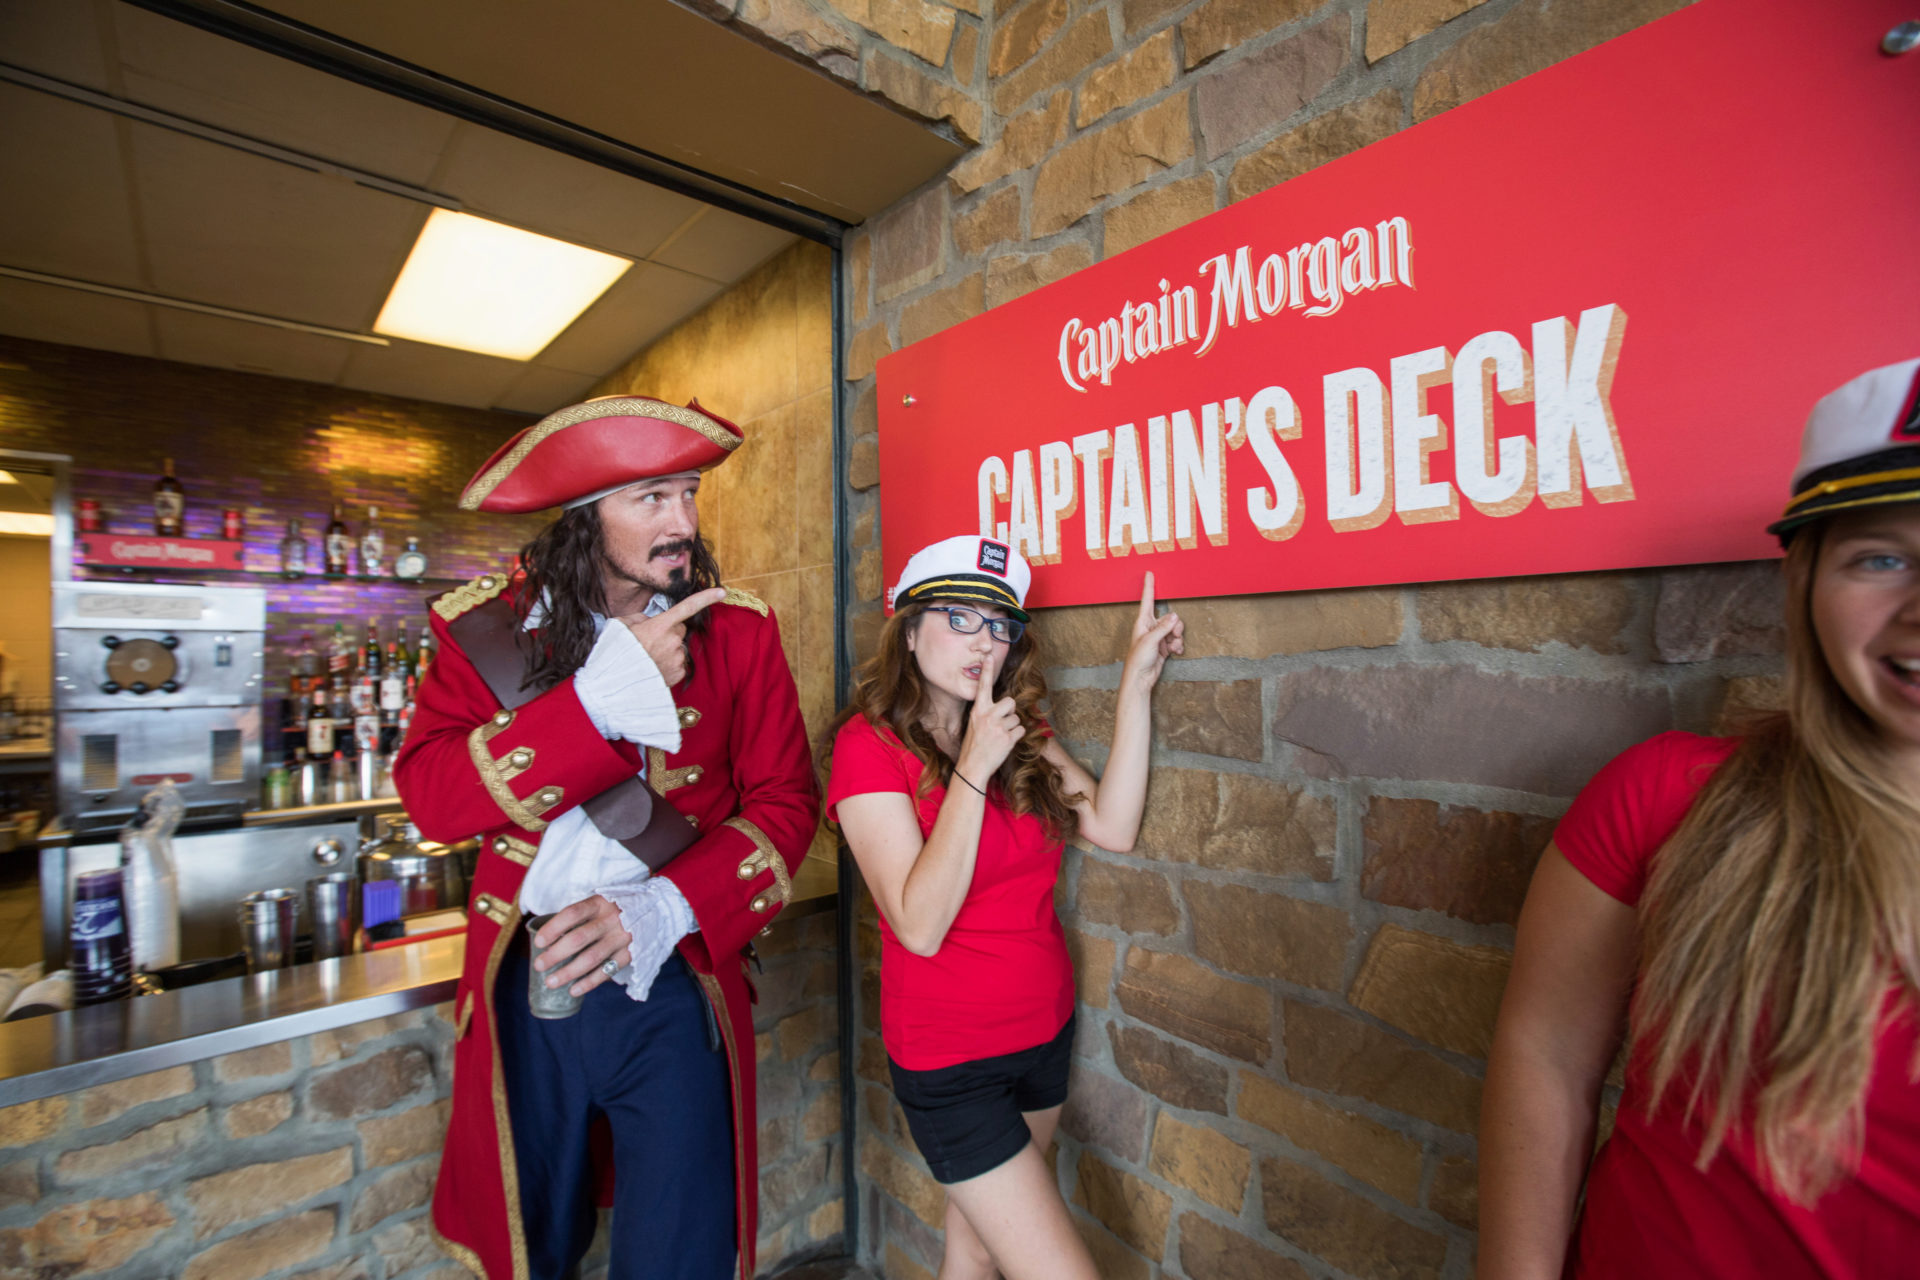 OHM-Captain Morgan-Rockies Game-Top Selects-36.jpg